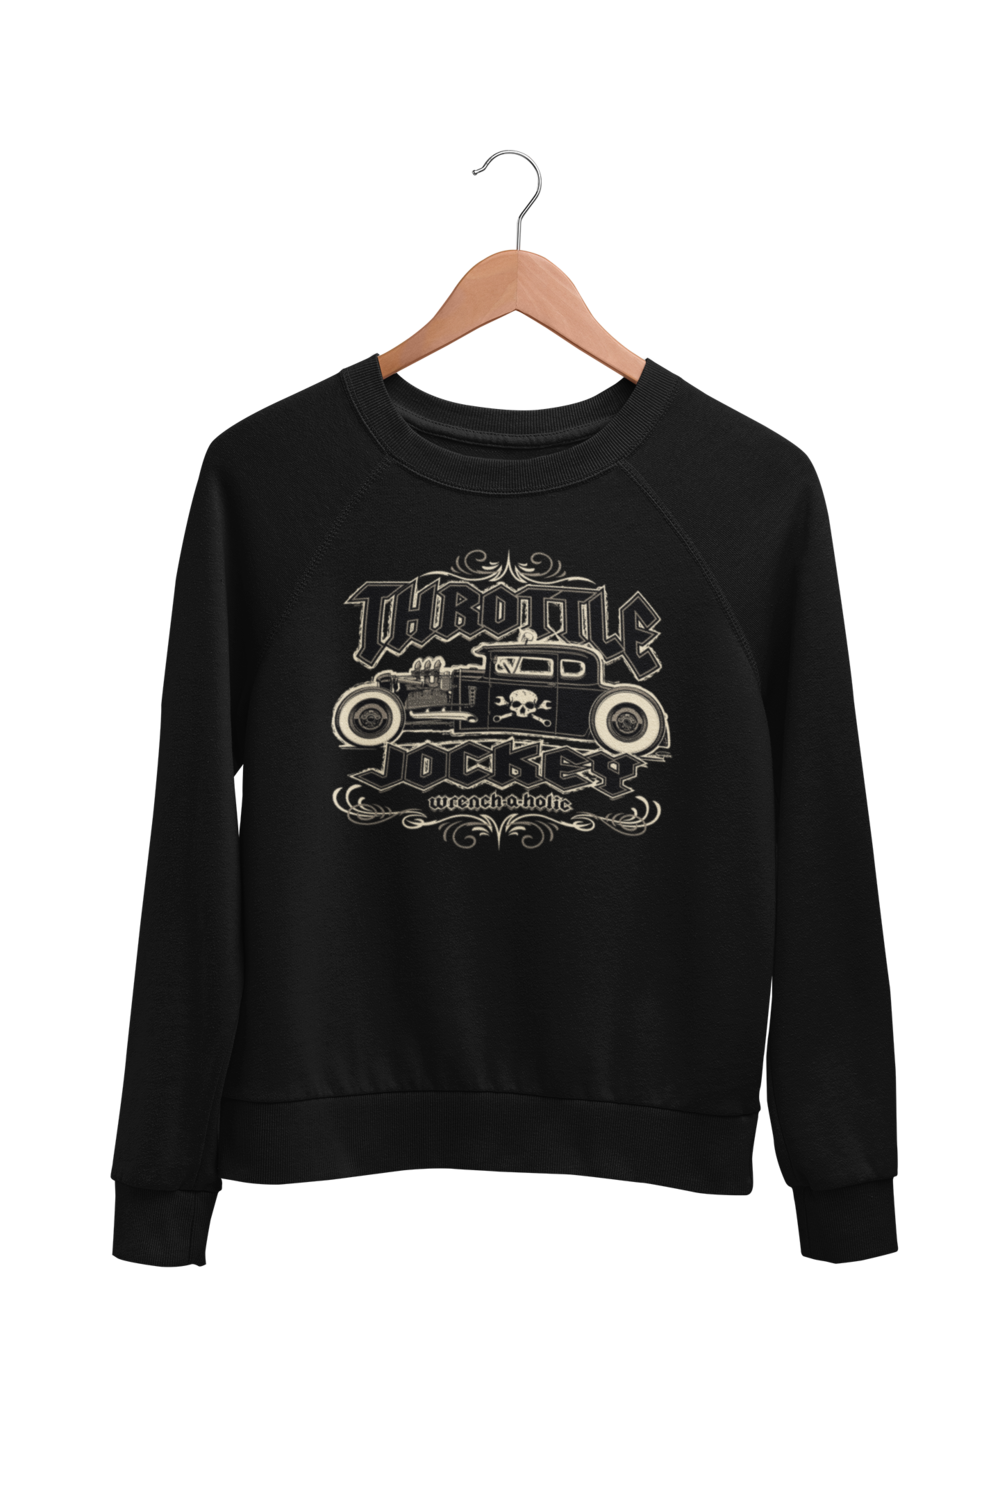 "THROTTLE JOCKEY ""Wrench a Holic"" SWEATSHIRT UNISEX by BY Ger ""Dutch Courage"" Peters artwork"